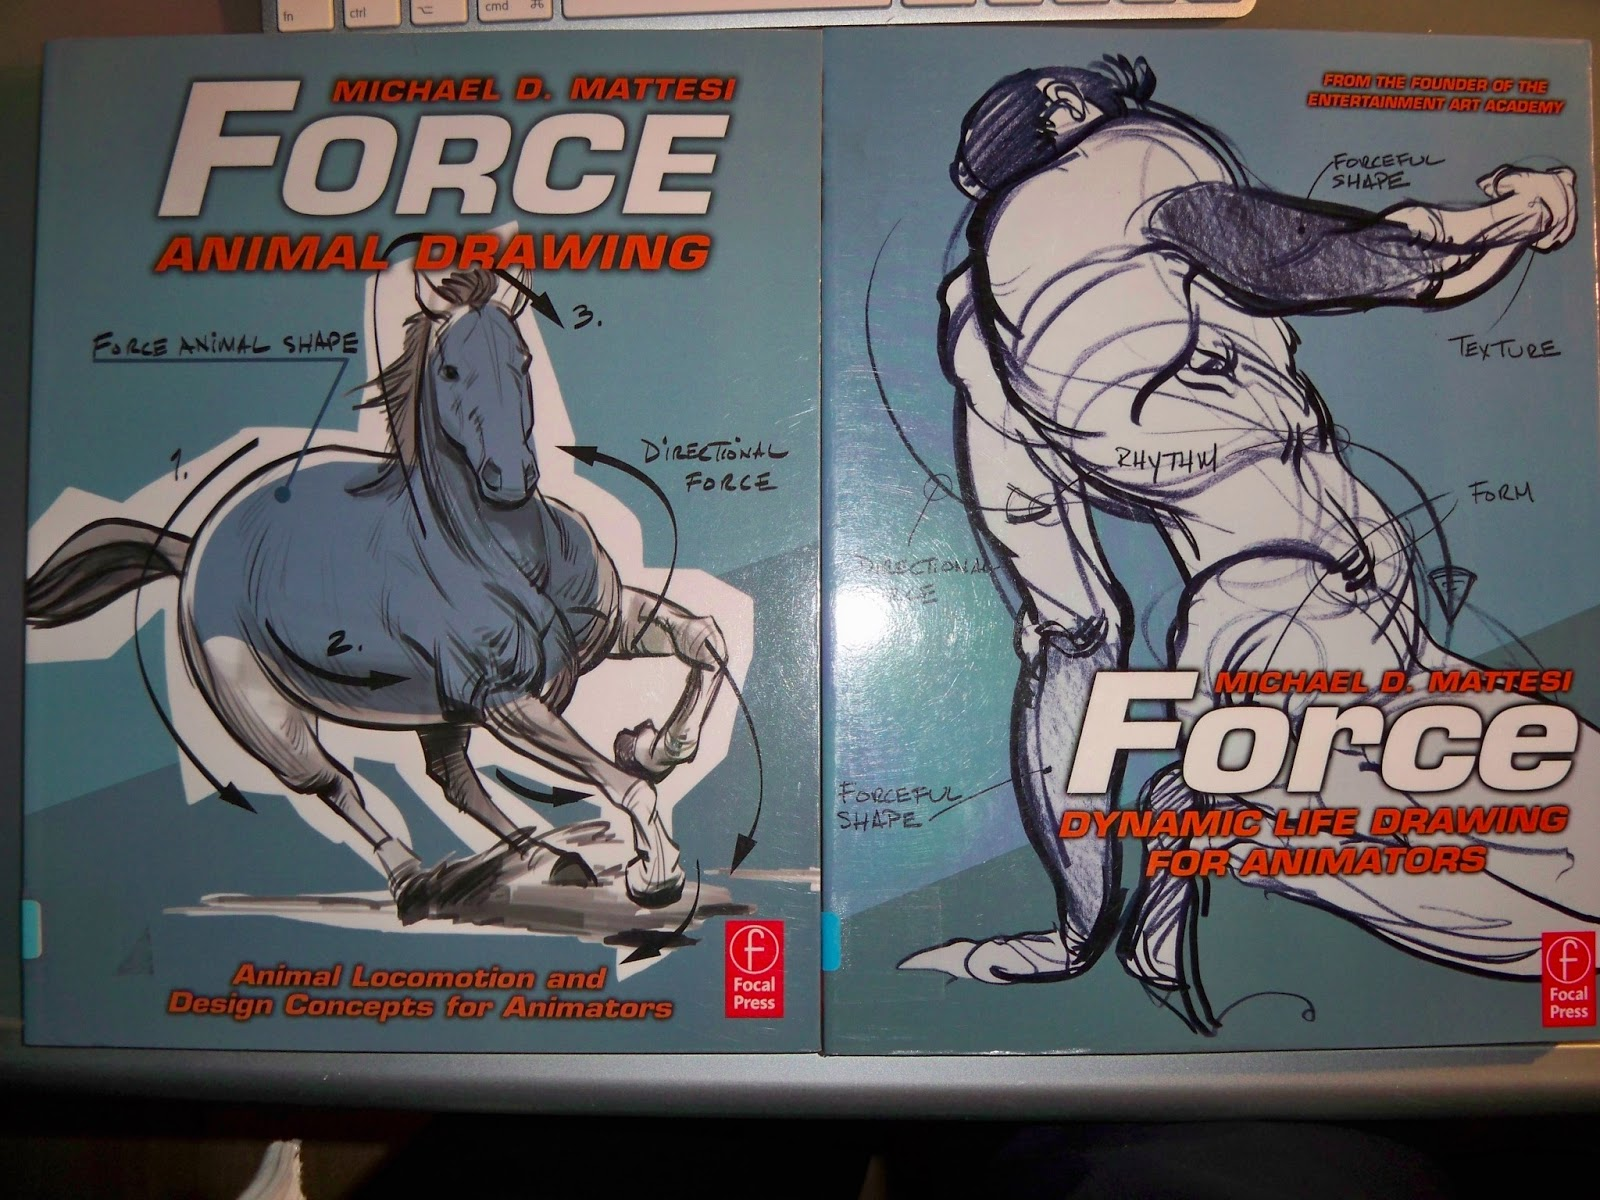 Force Book Drawing The Book is Called Force